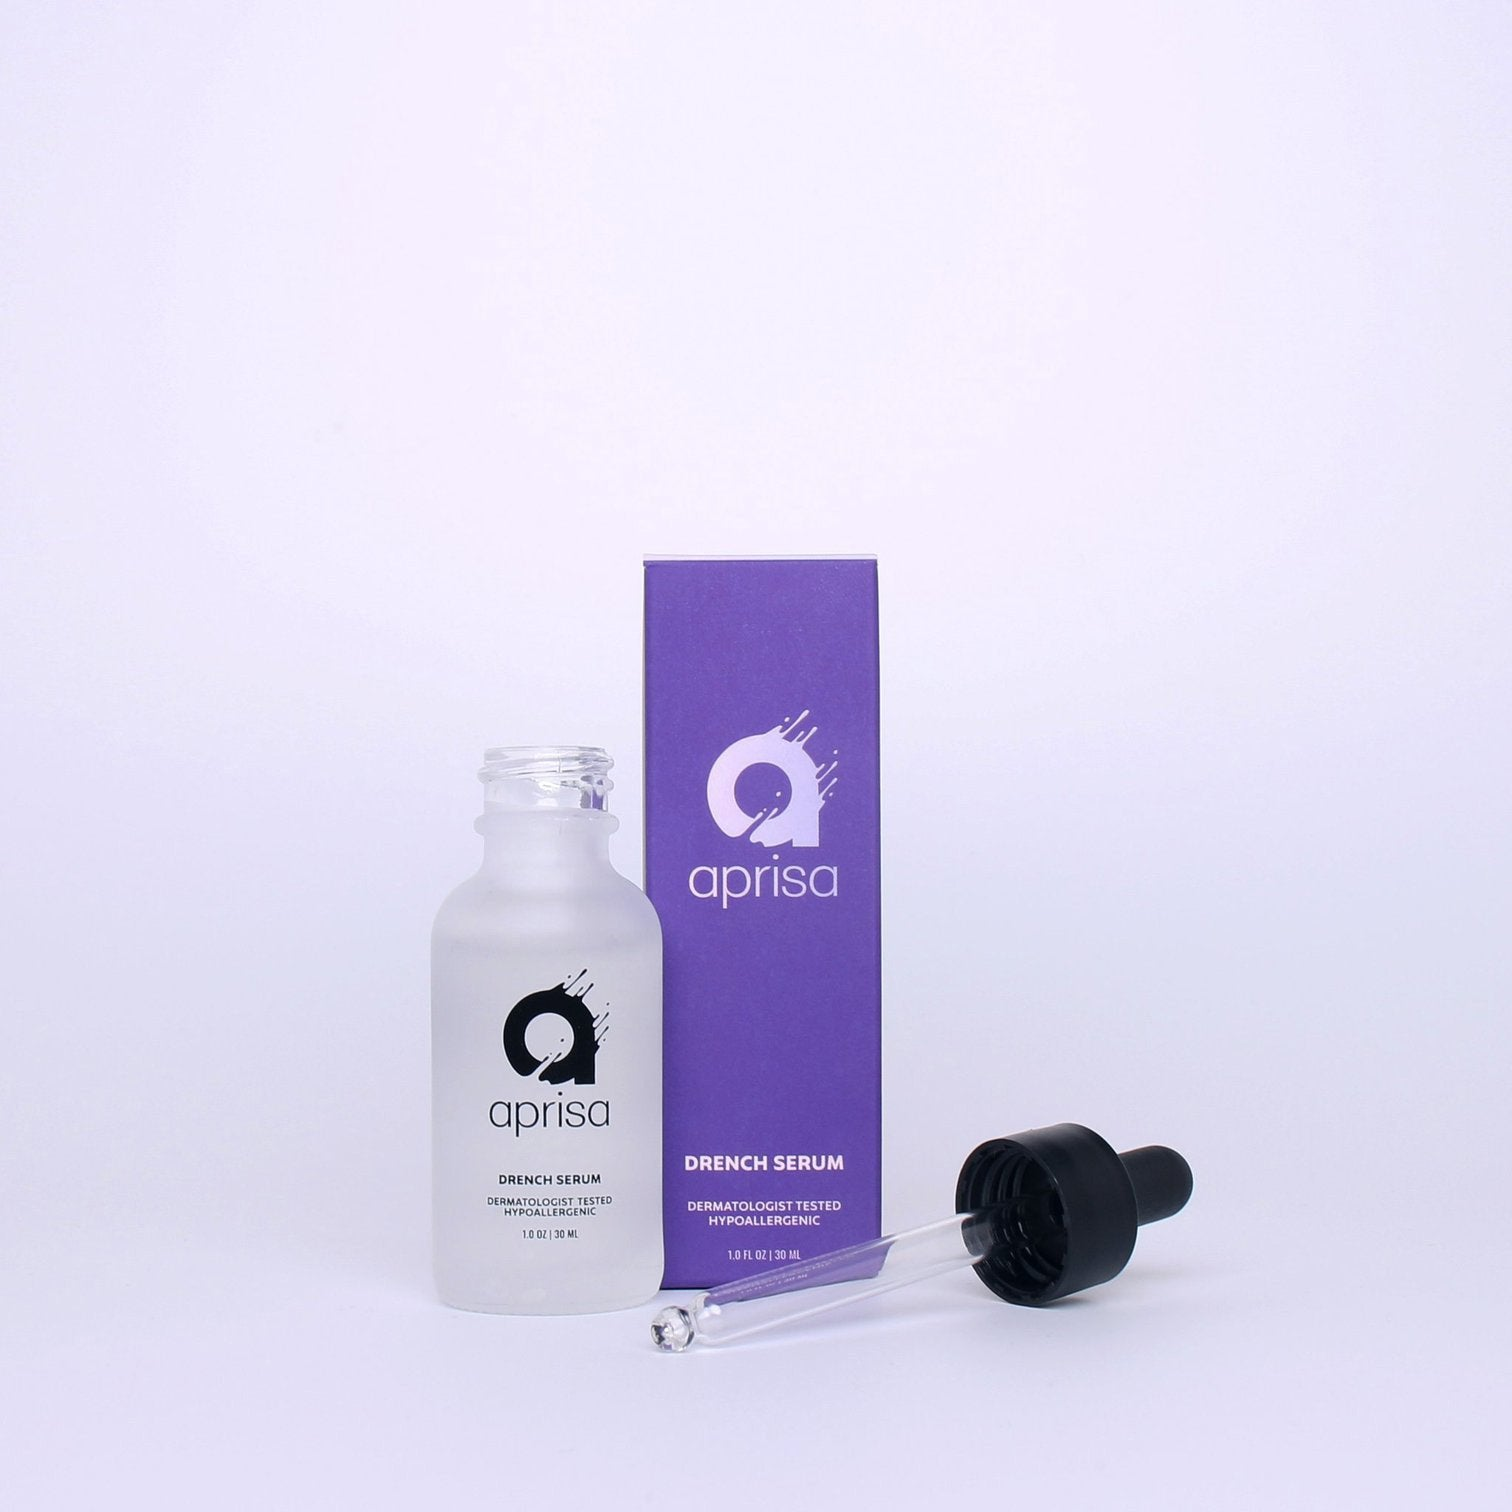 APRISA DRENCH® Serum - Aprisa® Inc.